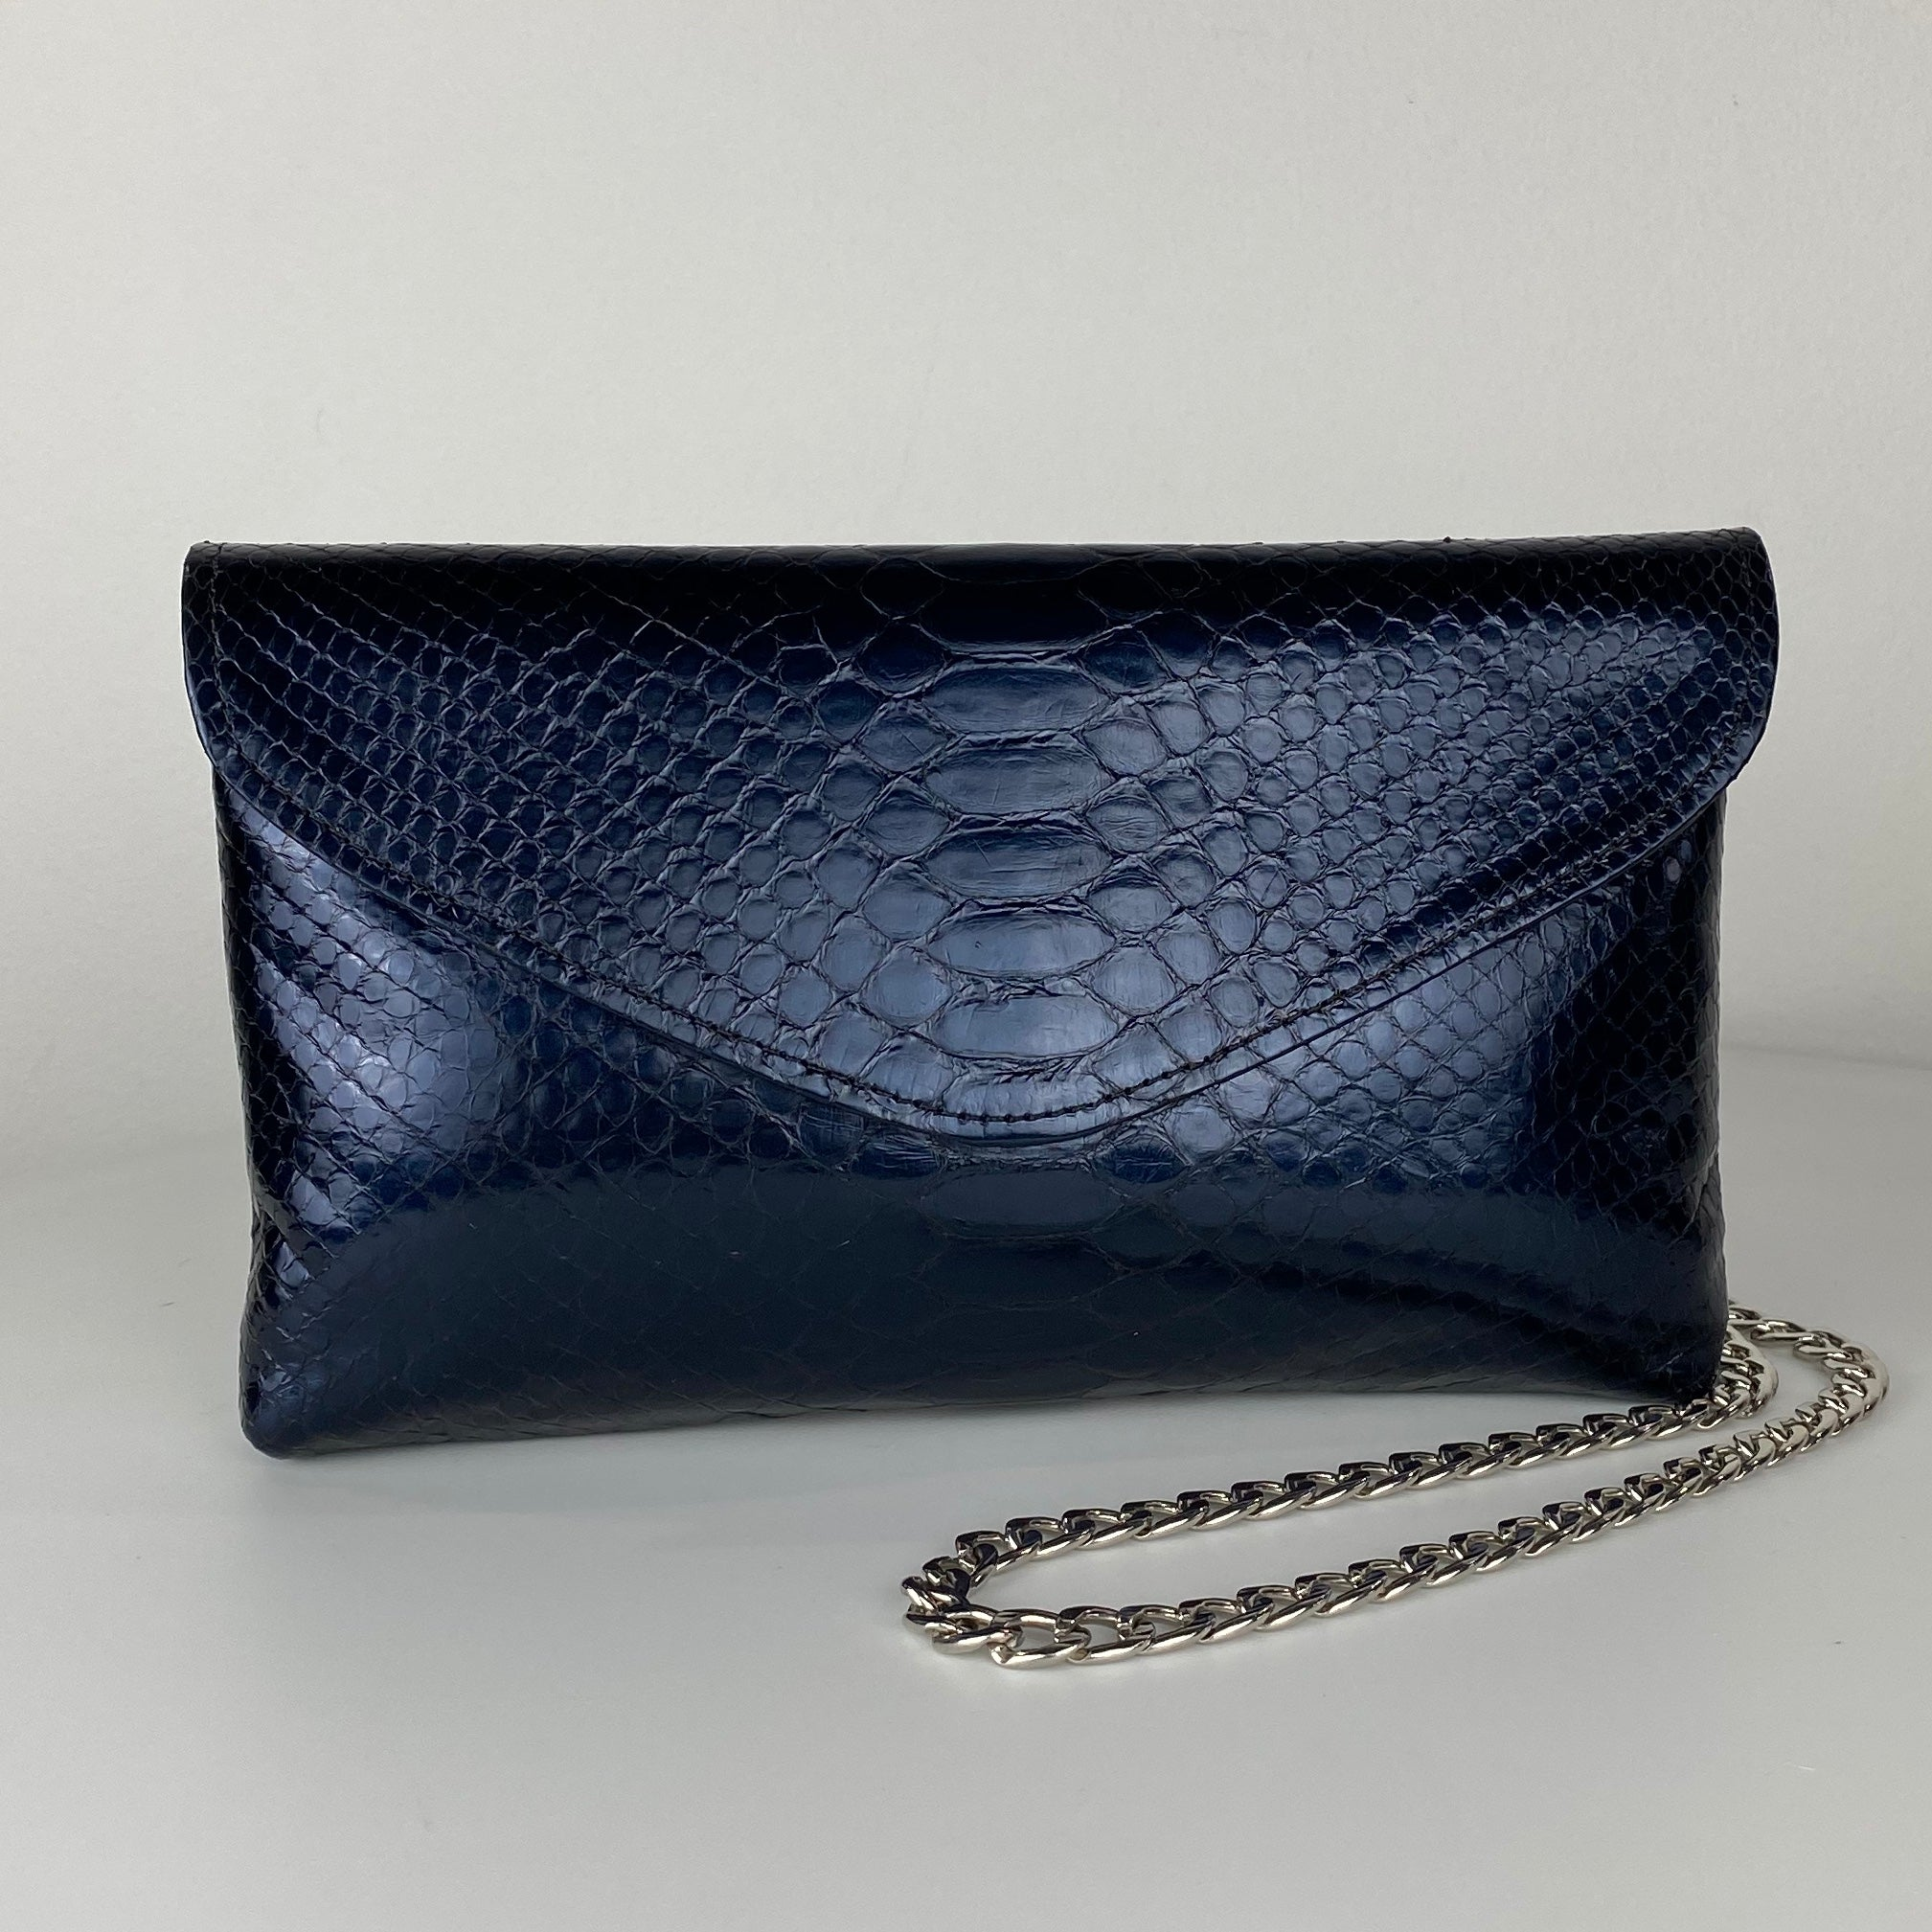 CLASSIC ENVELOPE BAG, MIDNIGHT BLUE